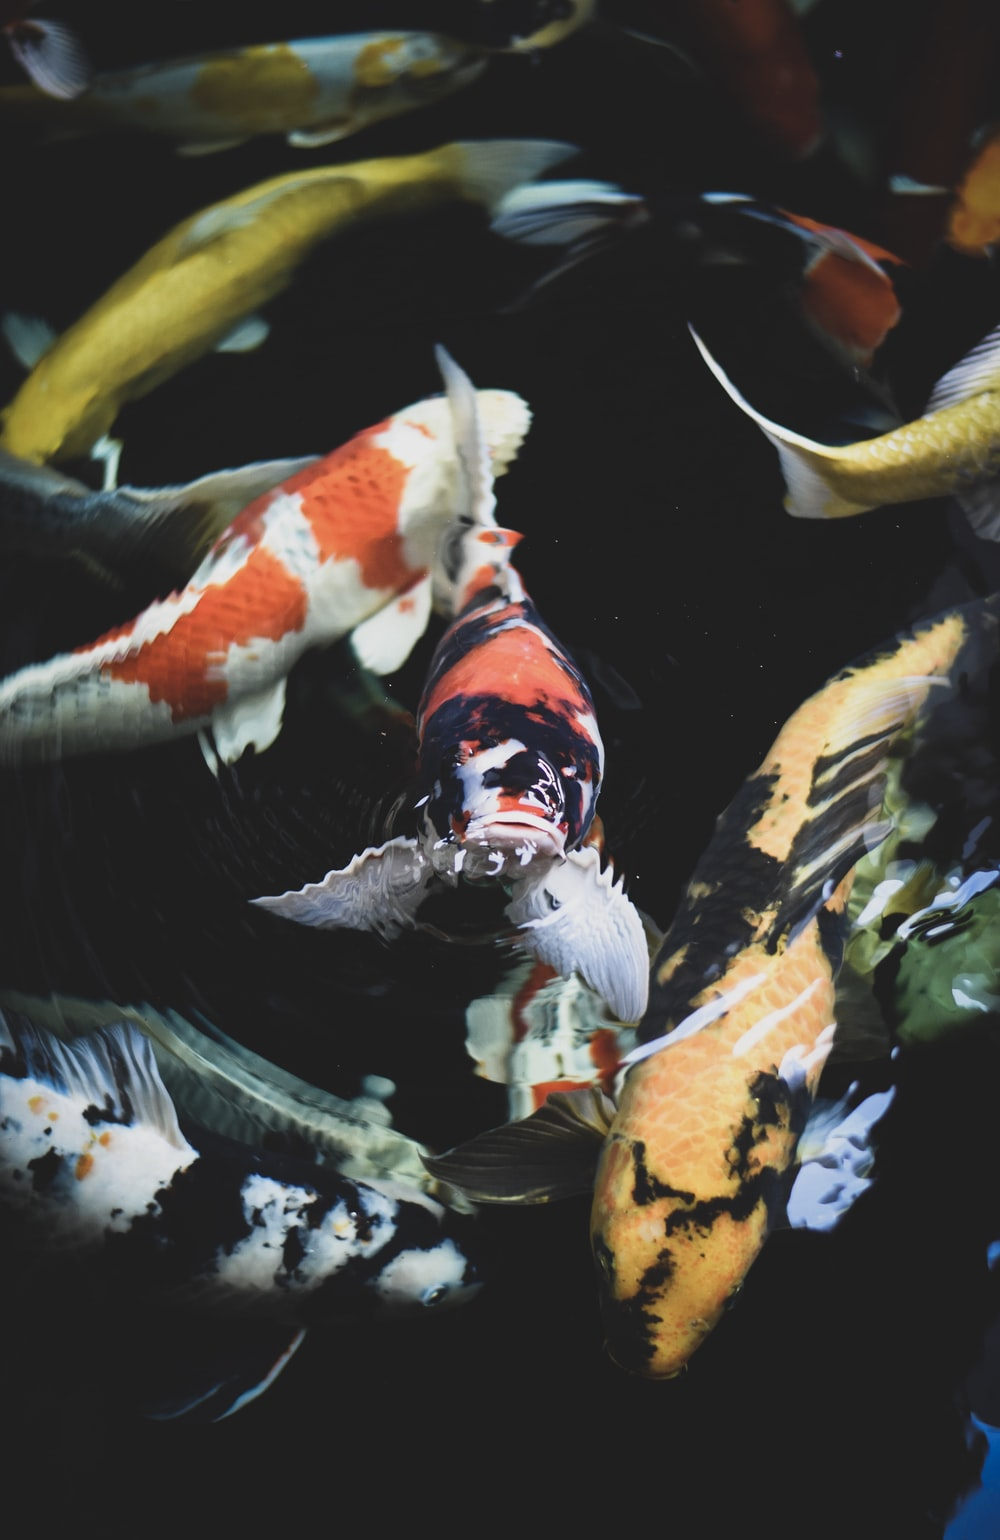 school of assorted-color koi fish